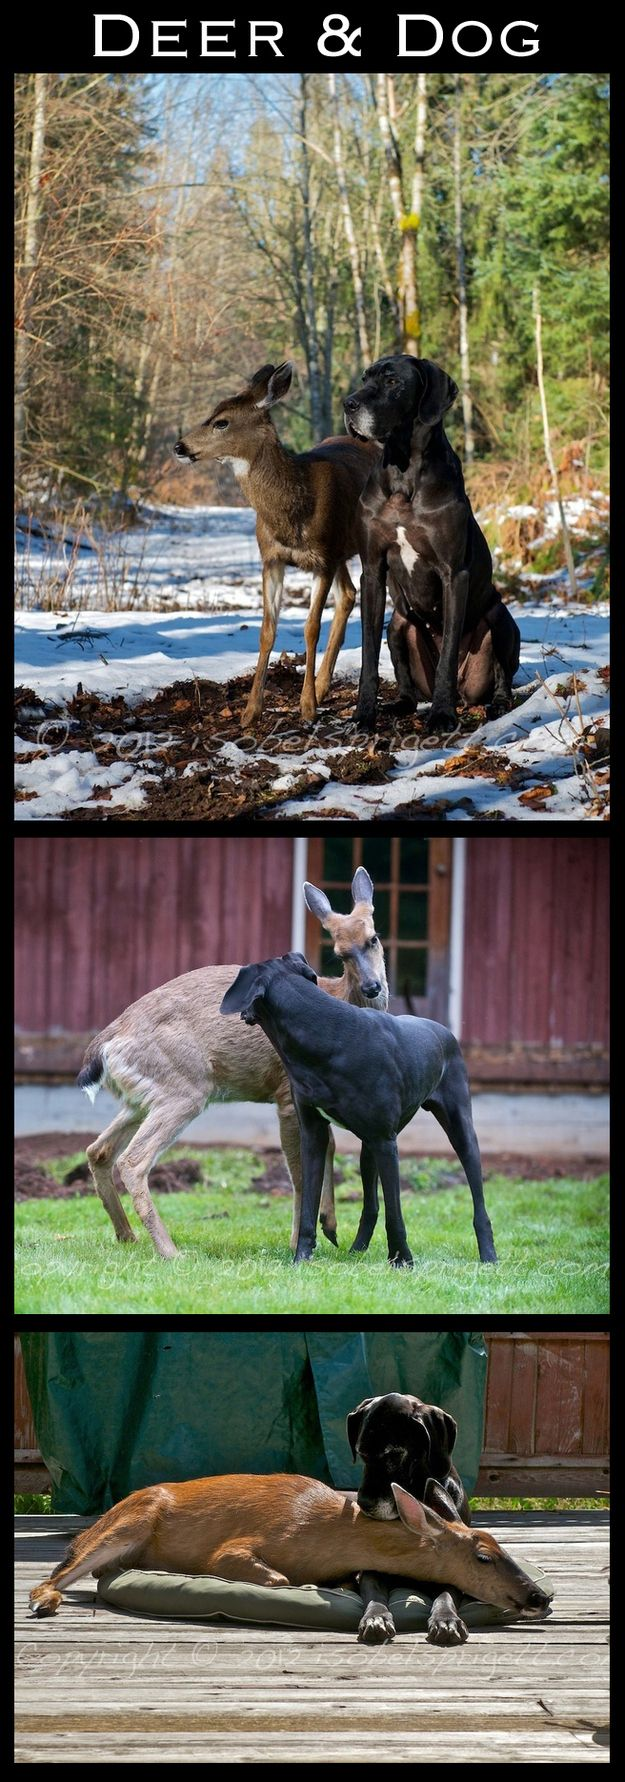 animal friends grew up together...